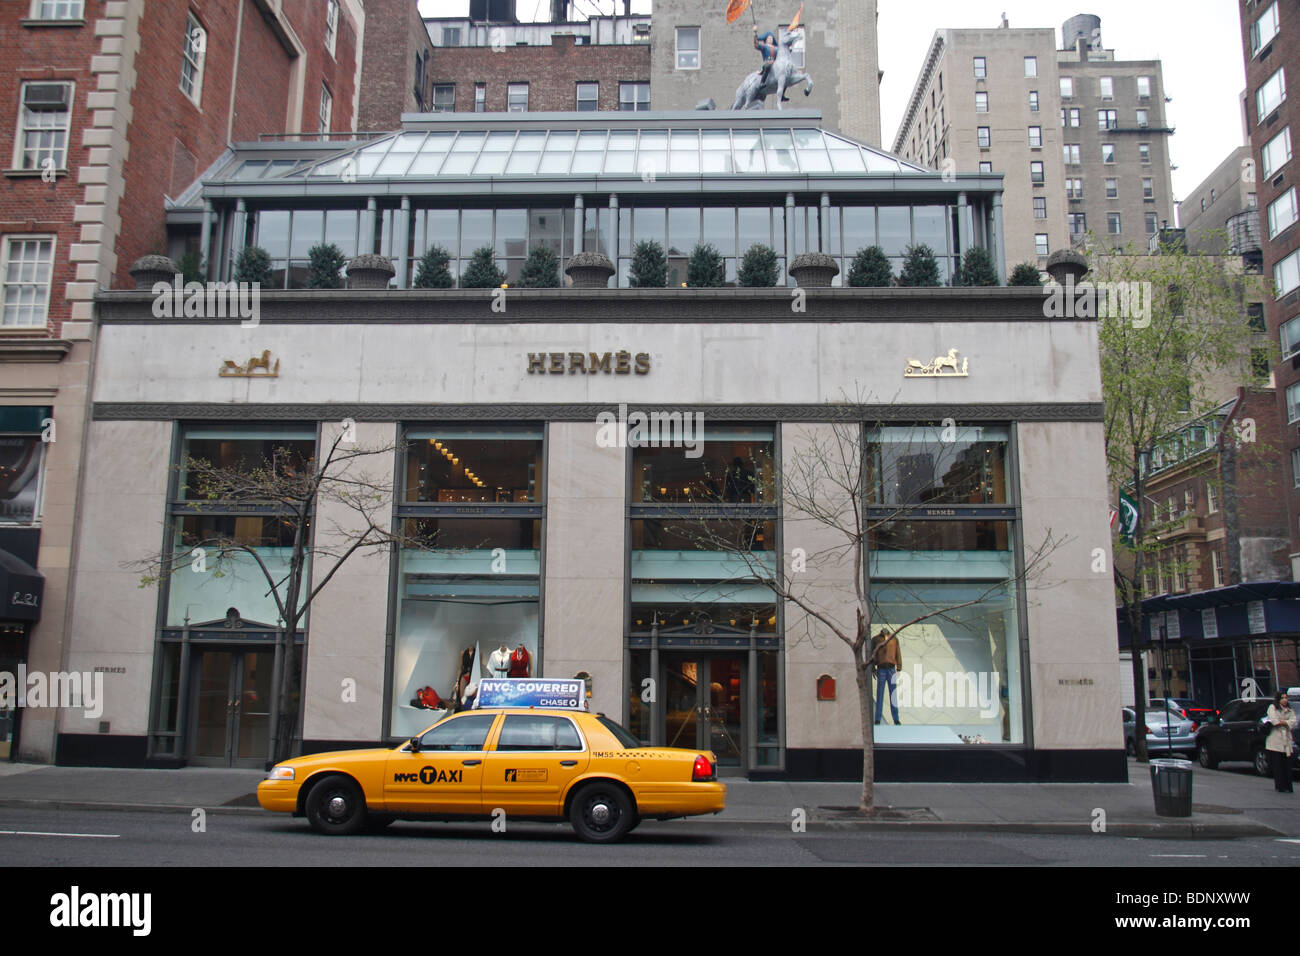 Hermes clothing store